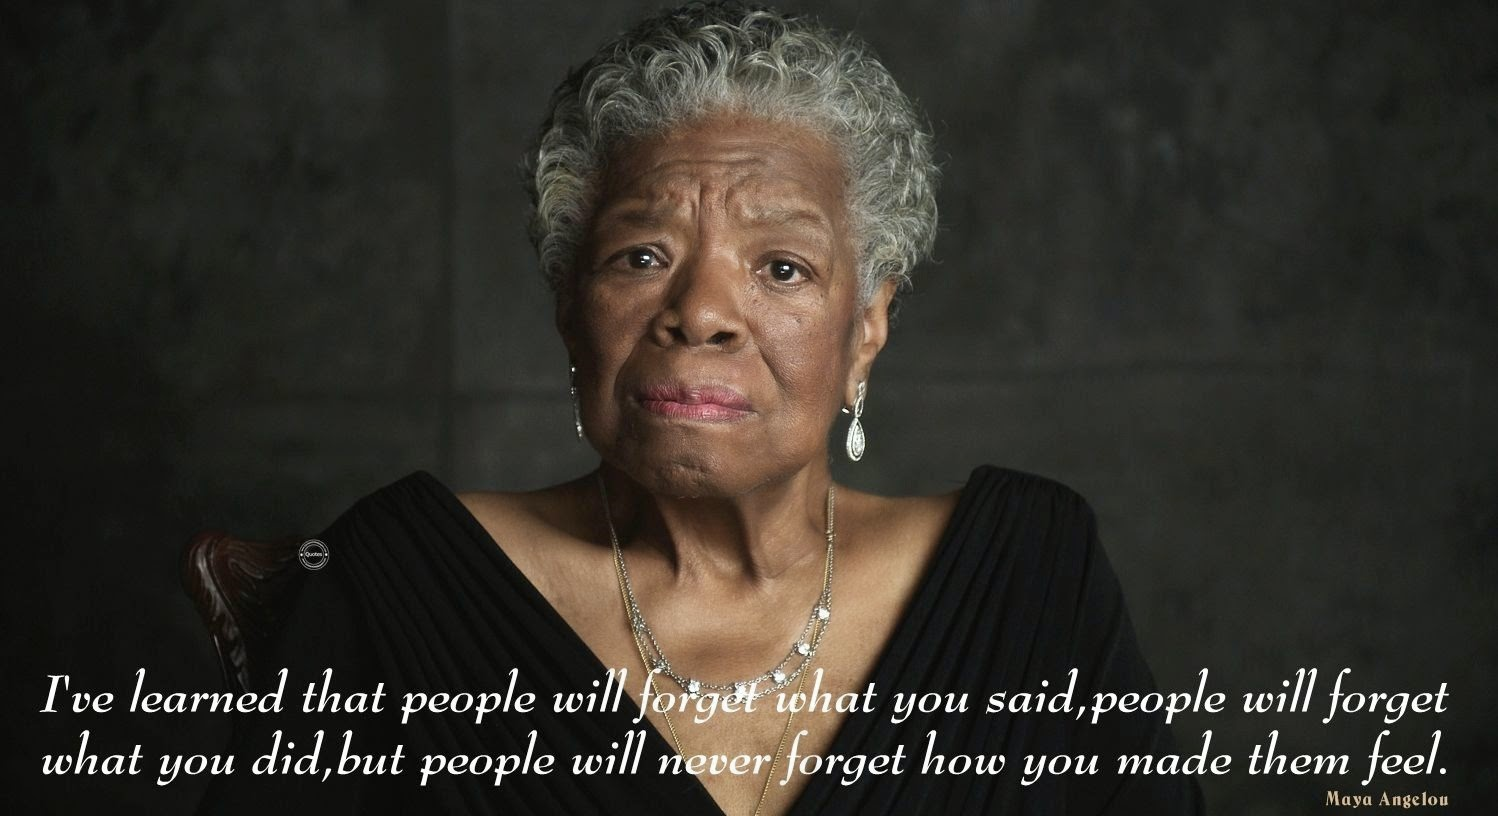 refusal by maya angelou Refusal – poem by maya angelou beloved, in what other lives or lands have i known your lips your hands your laughter brave irreverent those sweet excesses that i.